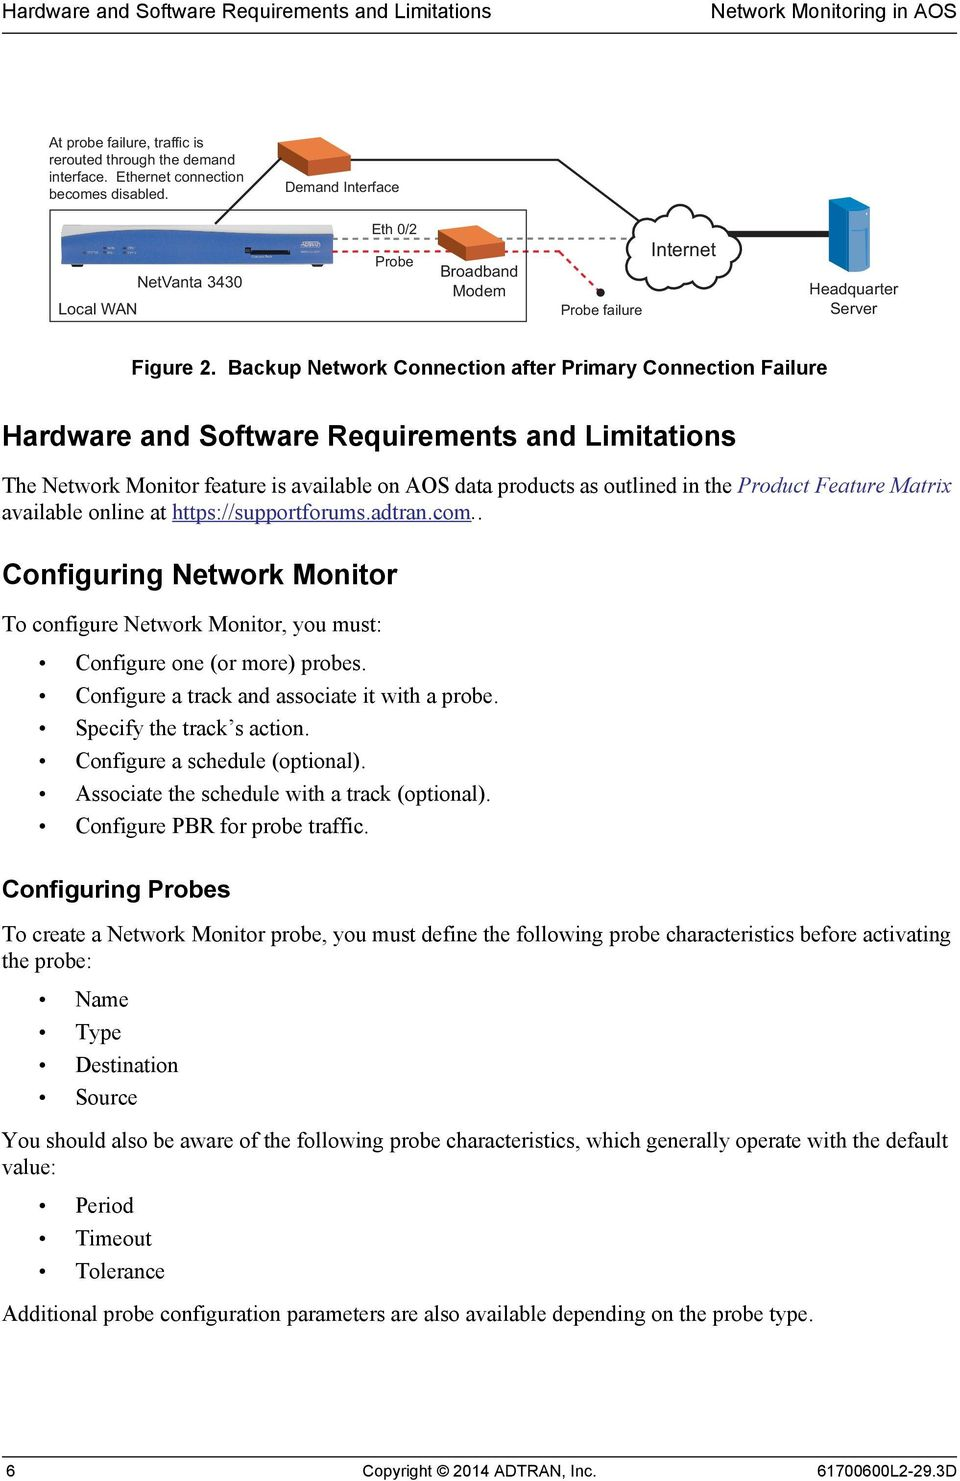 Backup Network Connection after Primary Connection Failure Hardware and Software Requirements and Limitations The Network Monitor feature is available on AOS data products as outlined in the Product